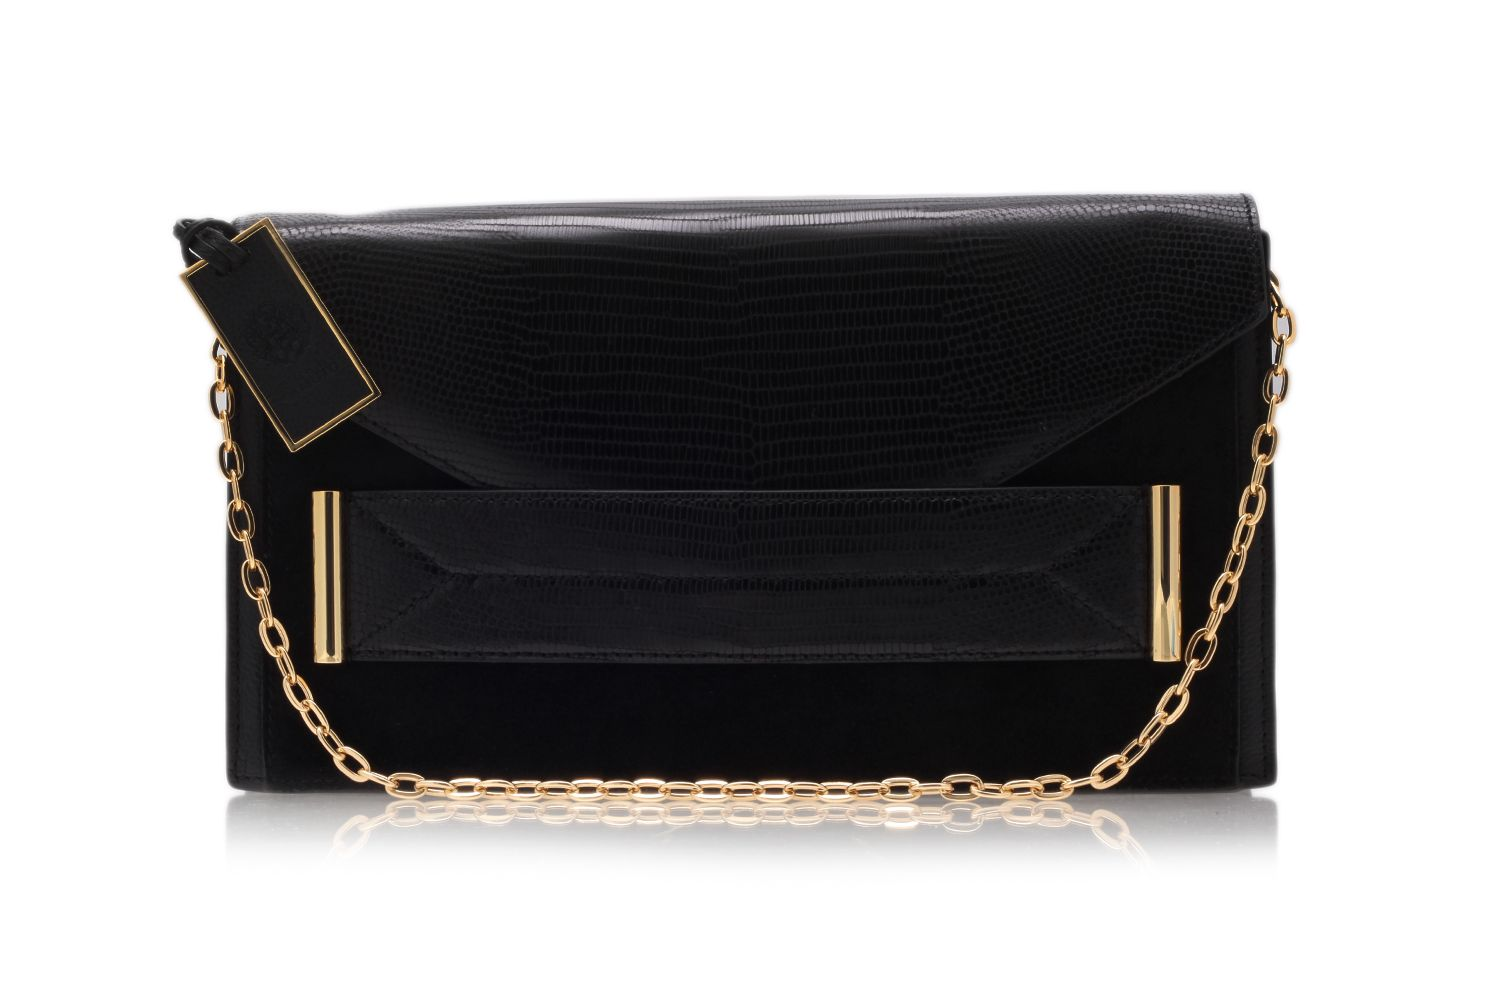 Billy clutch bag